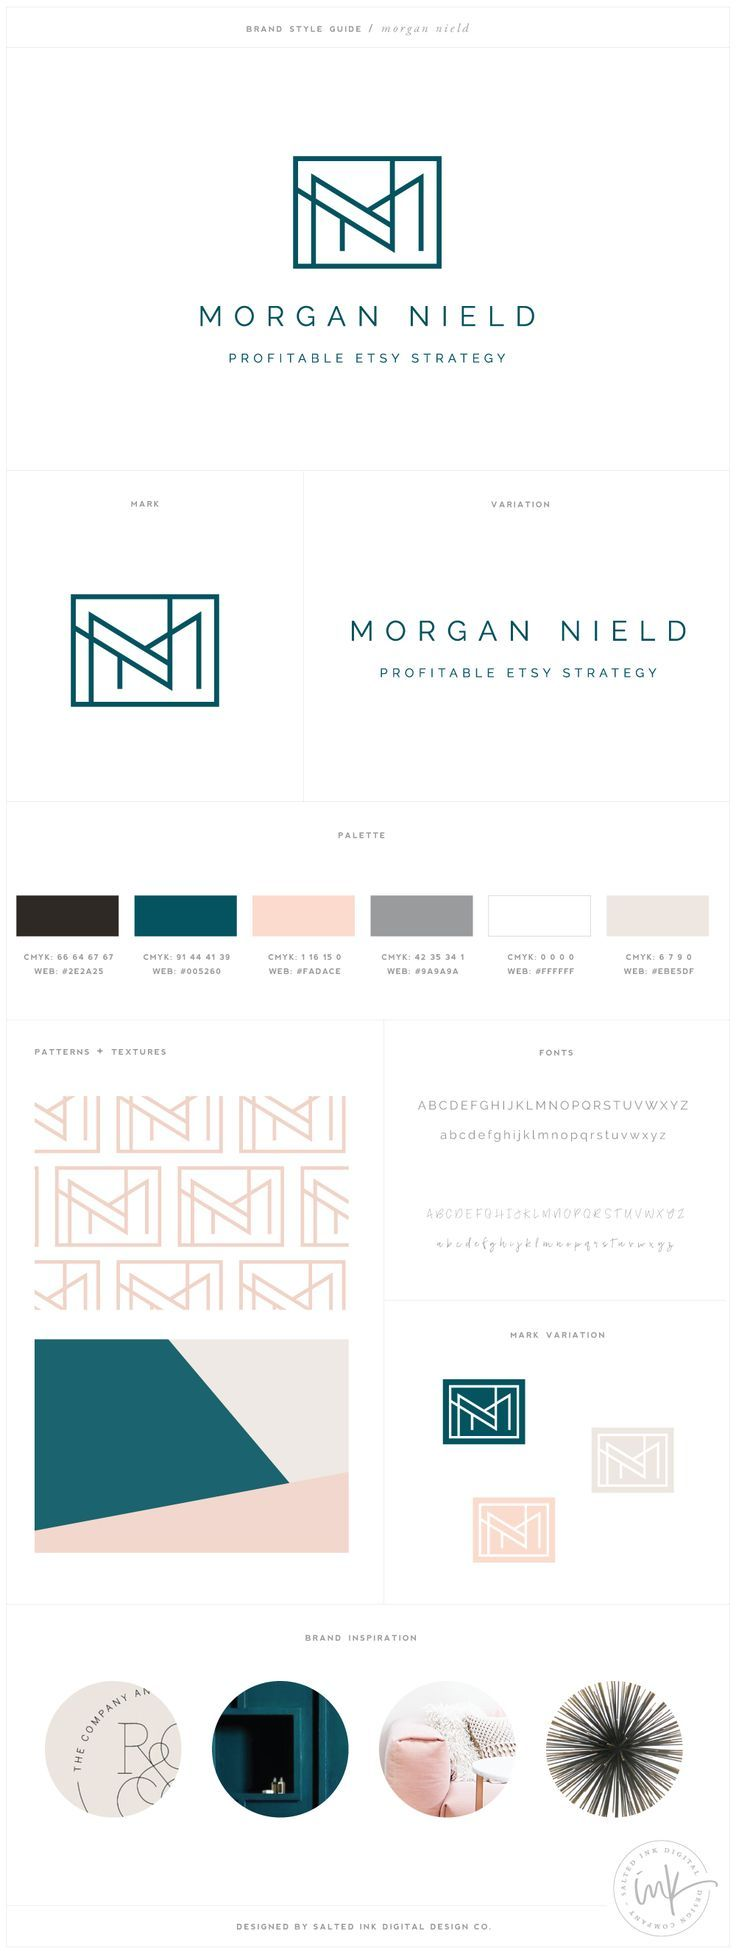 Minimalist Modern Geometric Logo Design For Morgannield By SaltedInk Blush Pink